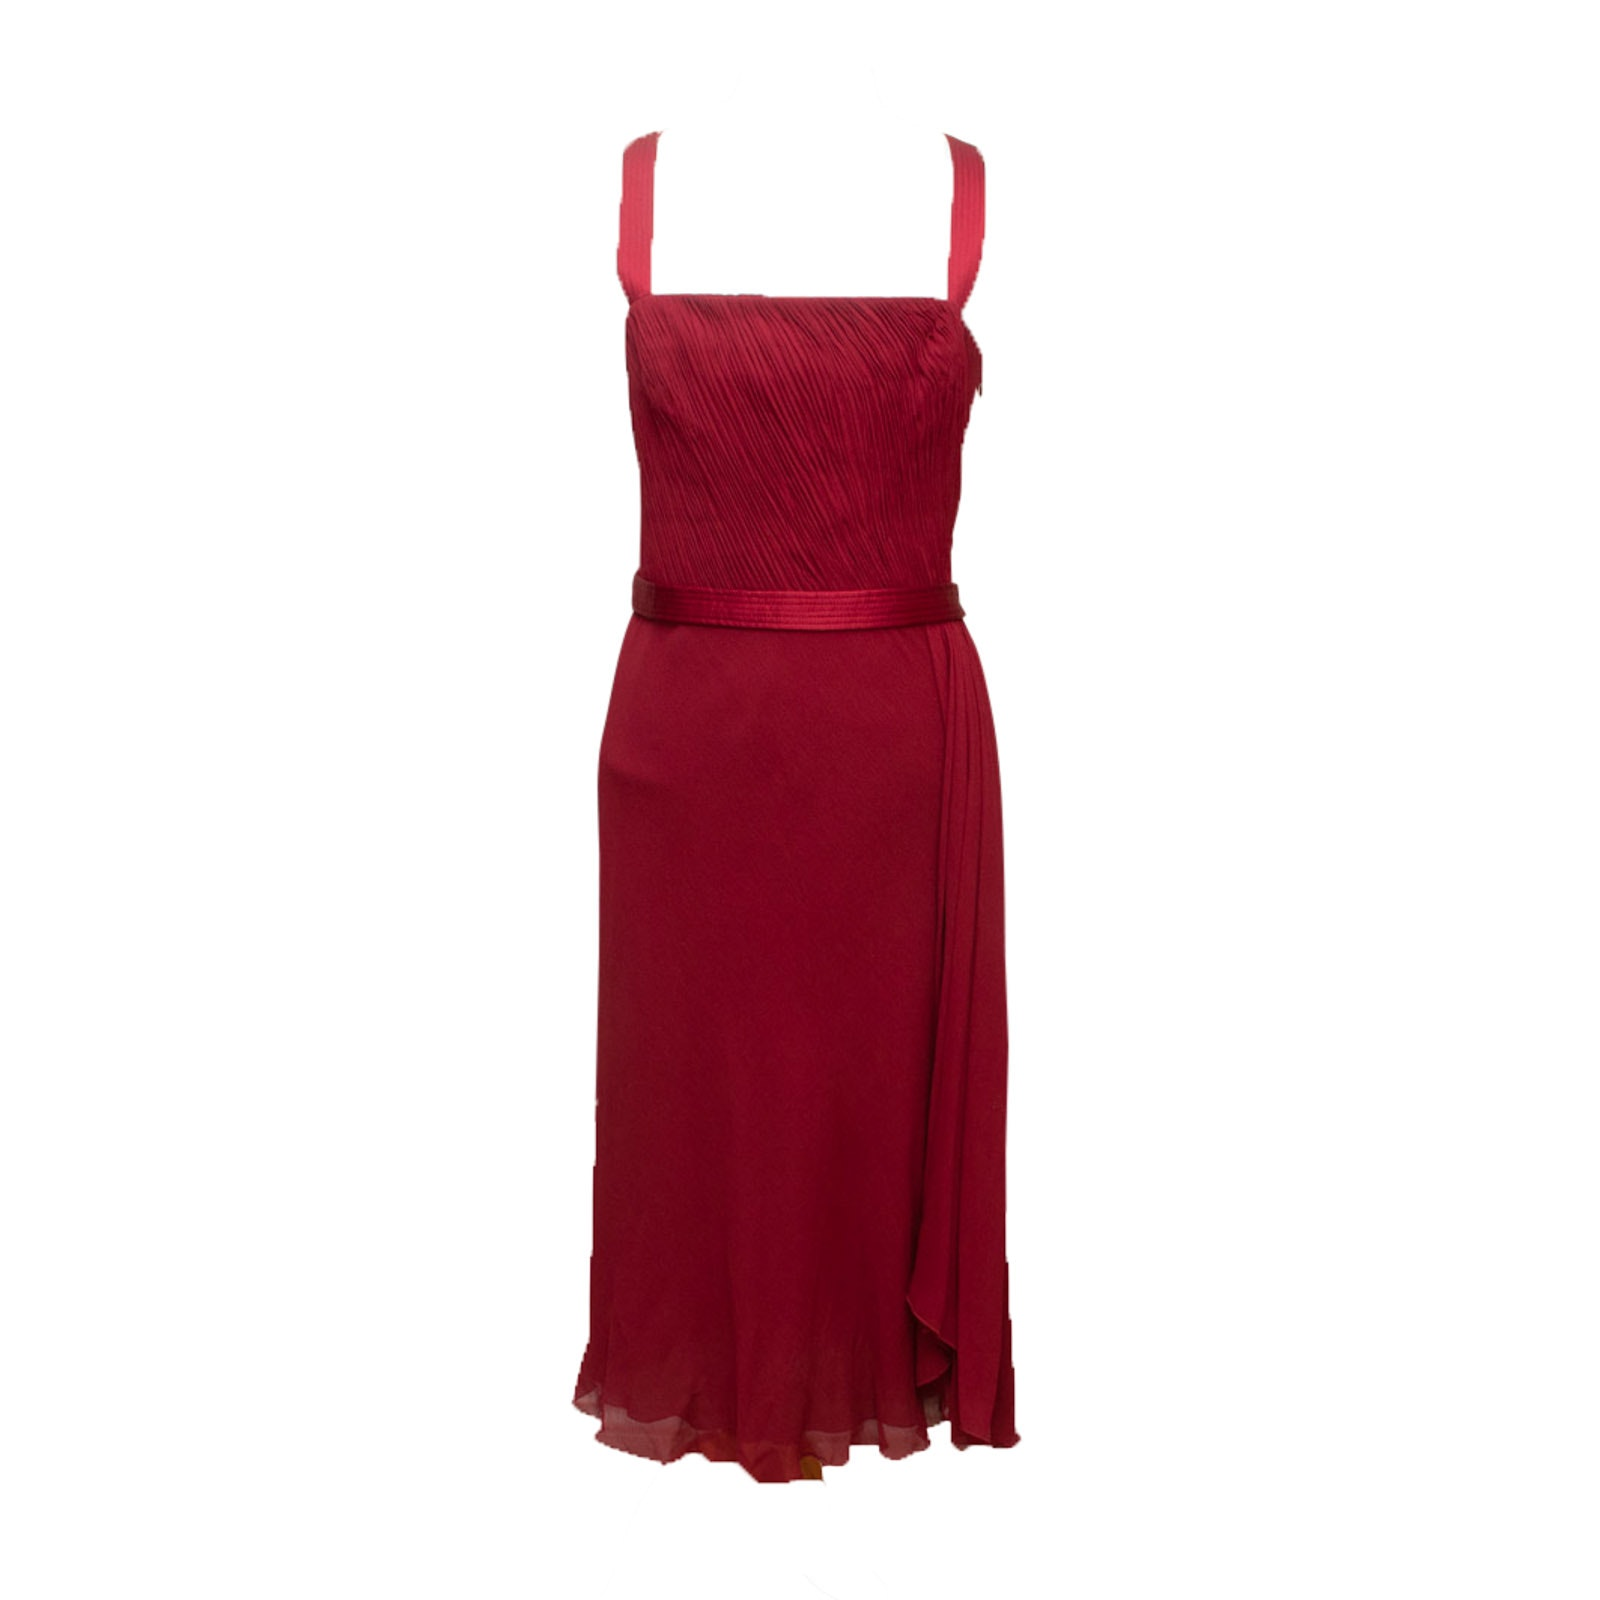 Armani Collezioni Red Silk Sleeveless Cocktail Dress